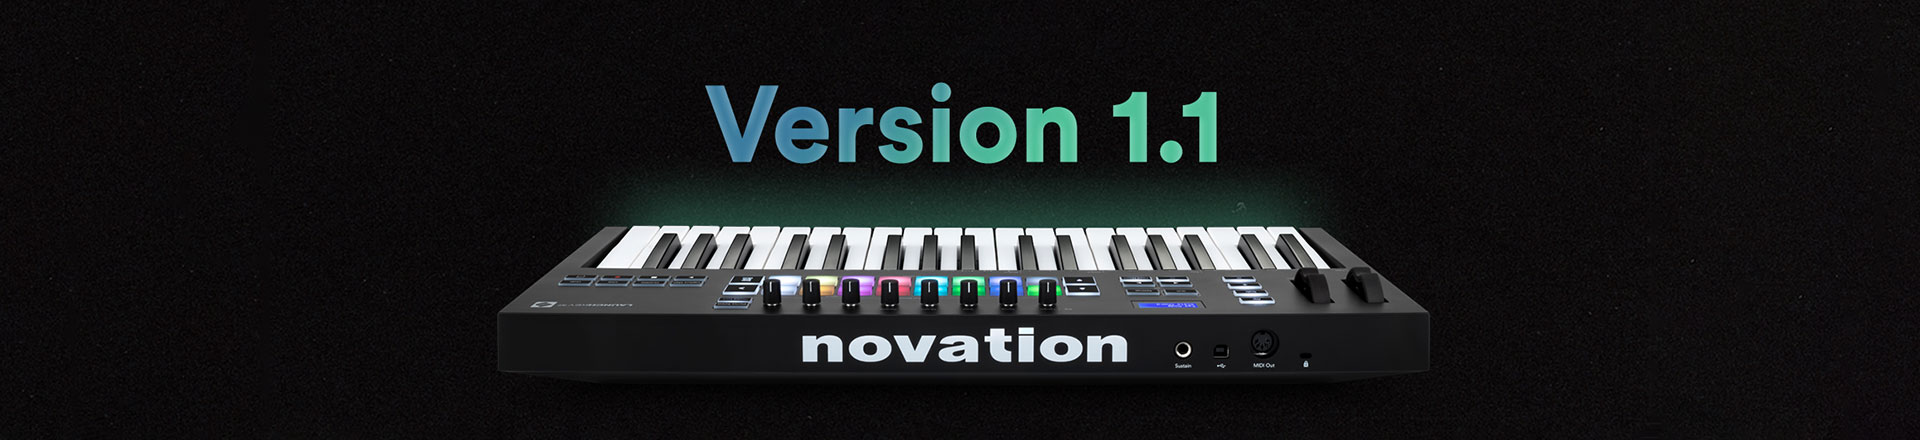 Tryb strunowy dla Novation Launchkey MK3 i Launchkey Mini MK3!